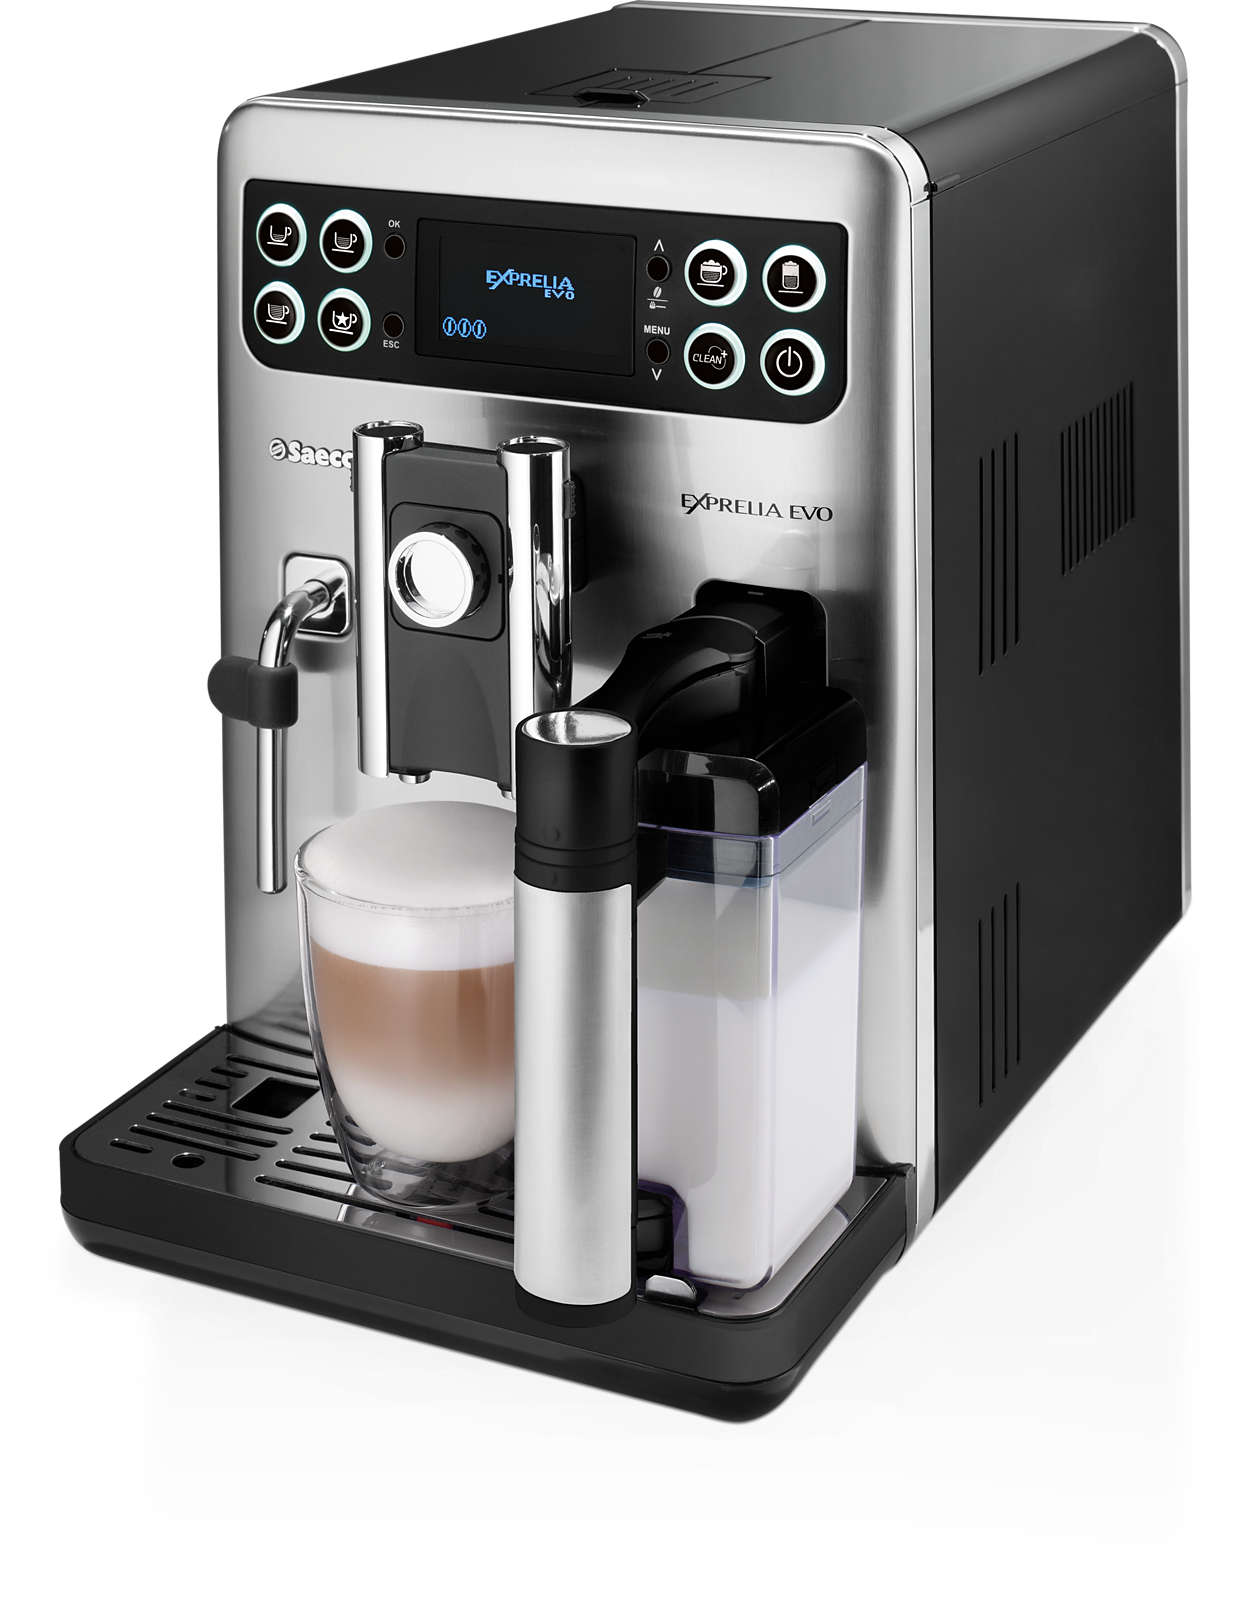 exprelia evo super automatic espresso machine hd8855 03 saeco. Black Bedroom Furniture Sets. Home Design Ideas